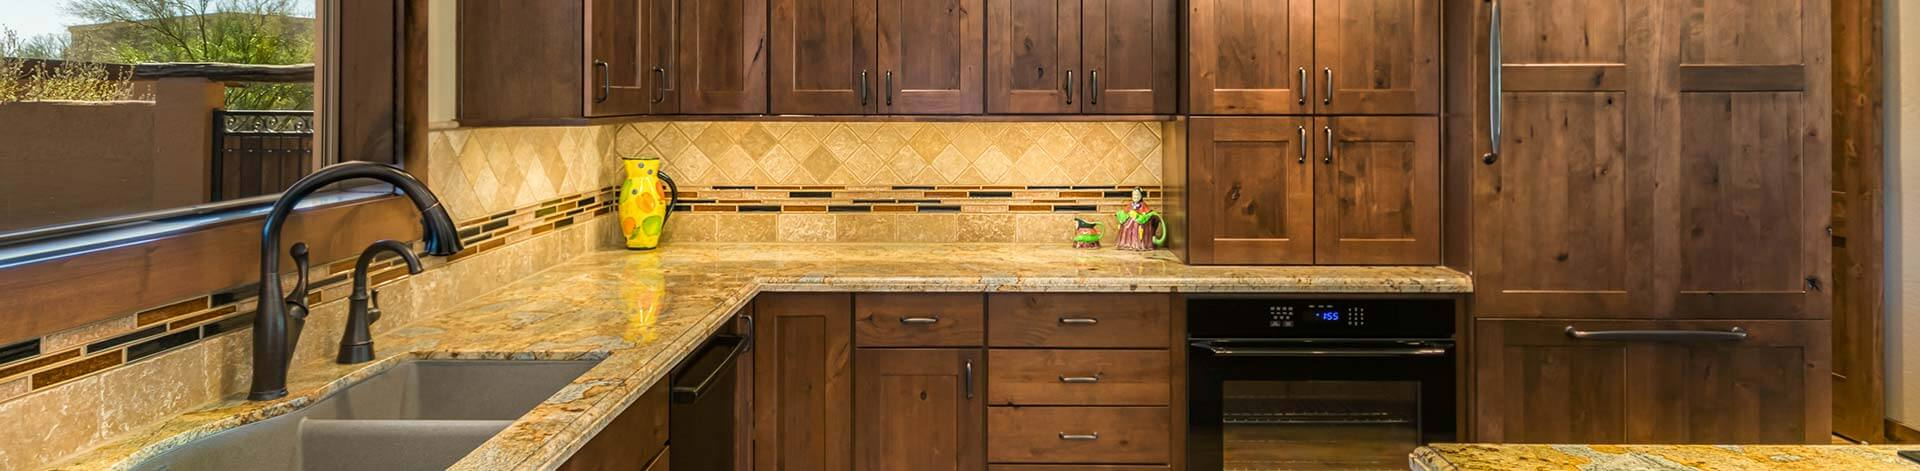 Kitchen Cabinet Remodeling Kitchen Cabinet Refacing Republic West Remodeling